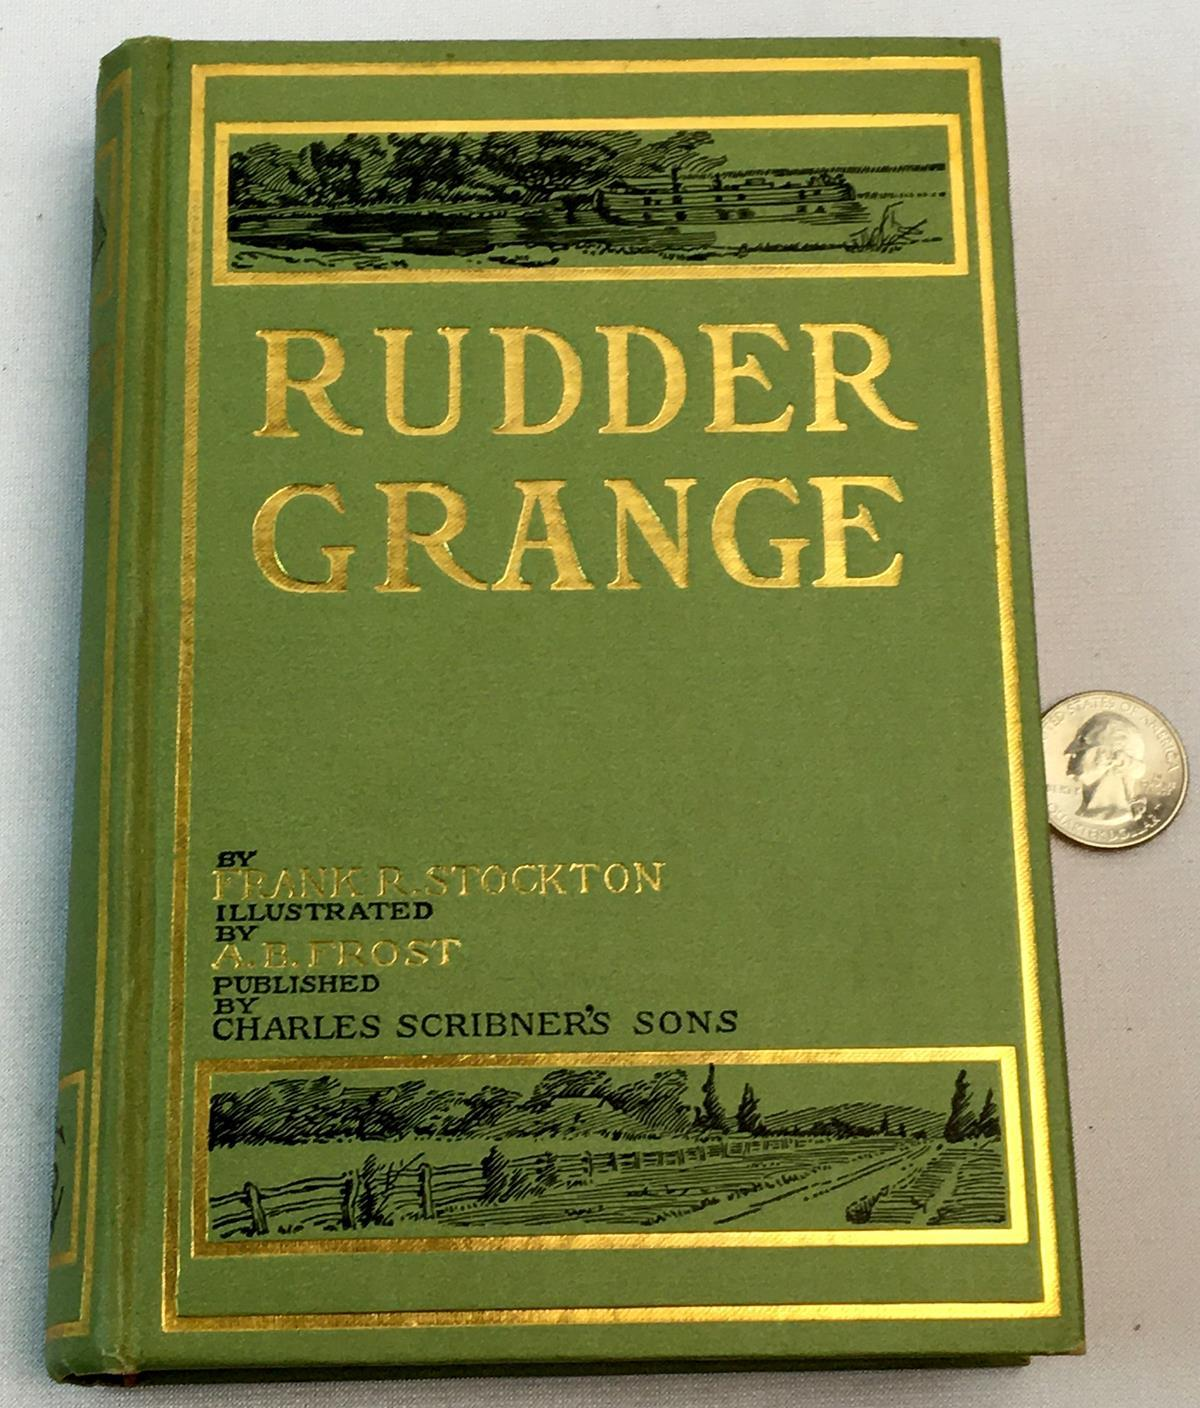 1885 Rudder Grange by Frank R. Stockton Illustrated by A.B. Frost